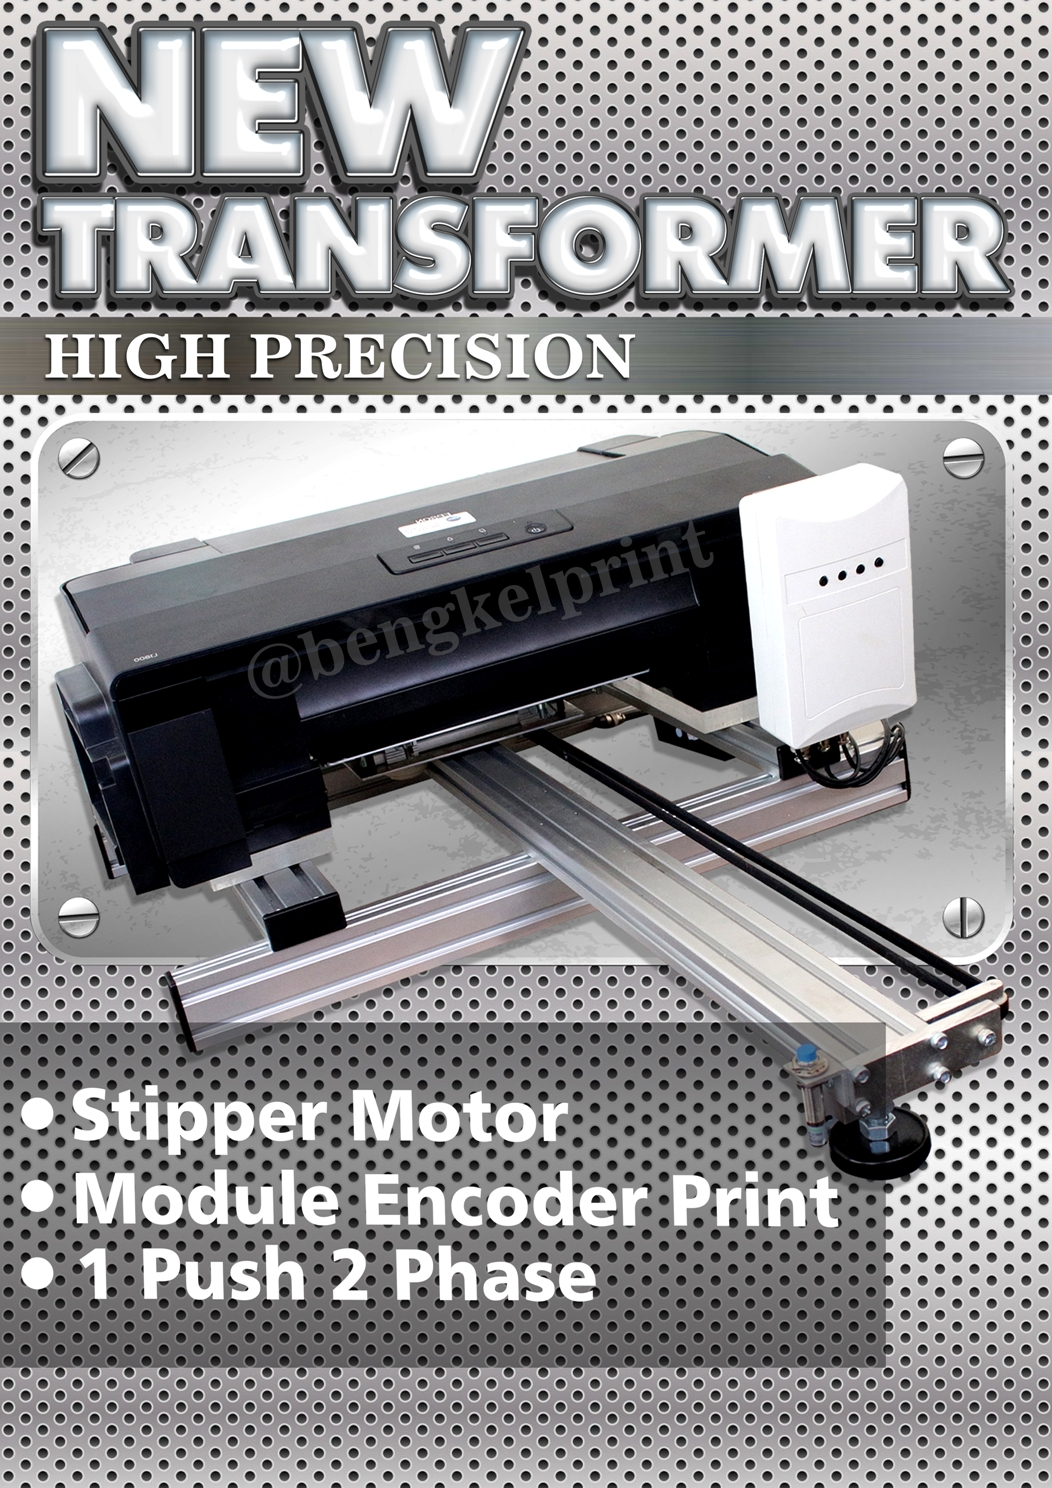 Jual Printer DTG NEW Transformer High Precision